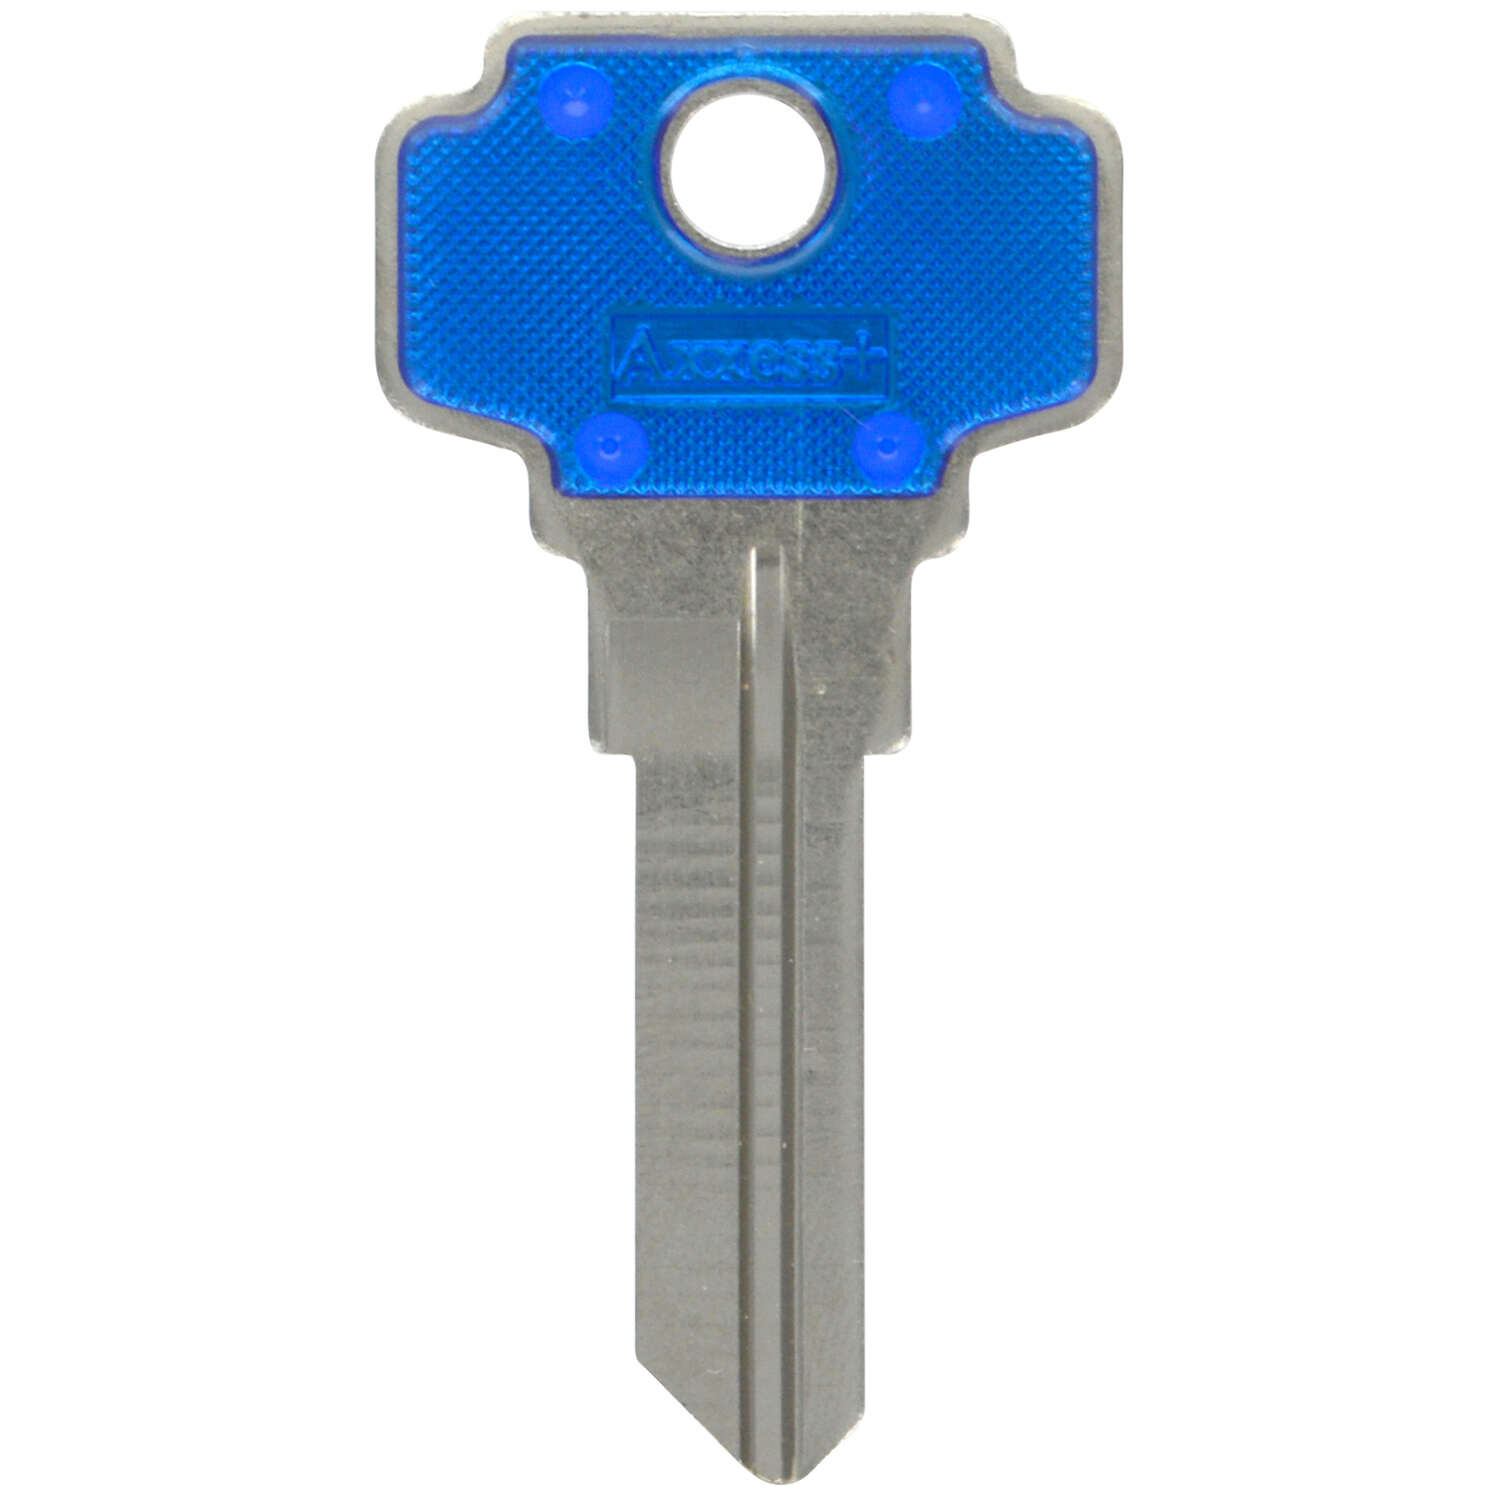 Hillman Traditional Key House/Office Key Blank 70 DE6, DE5, HR1, MD17 Single sided For Dexter